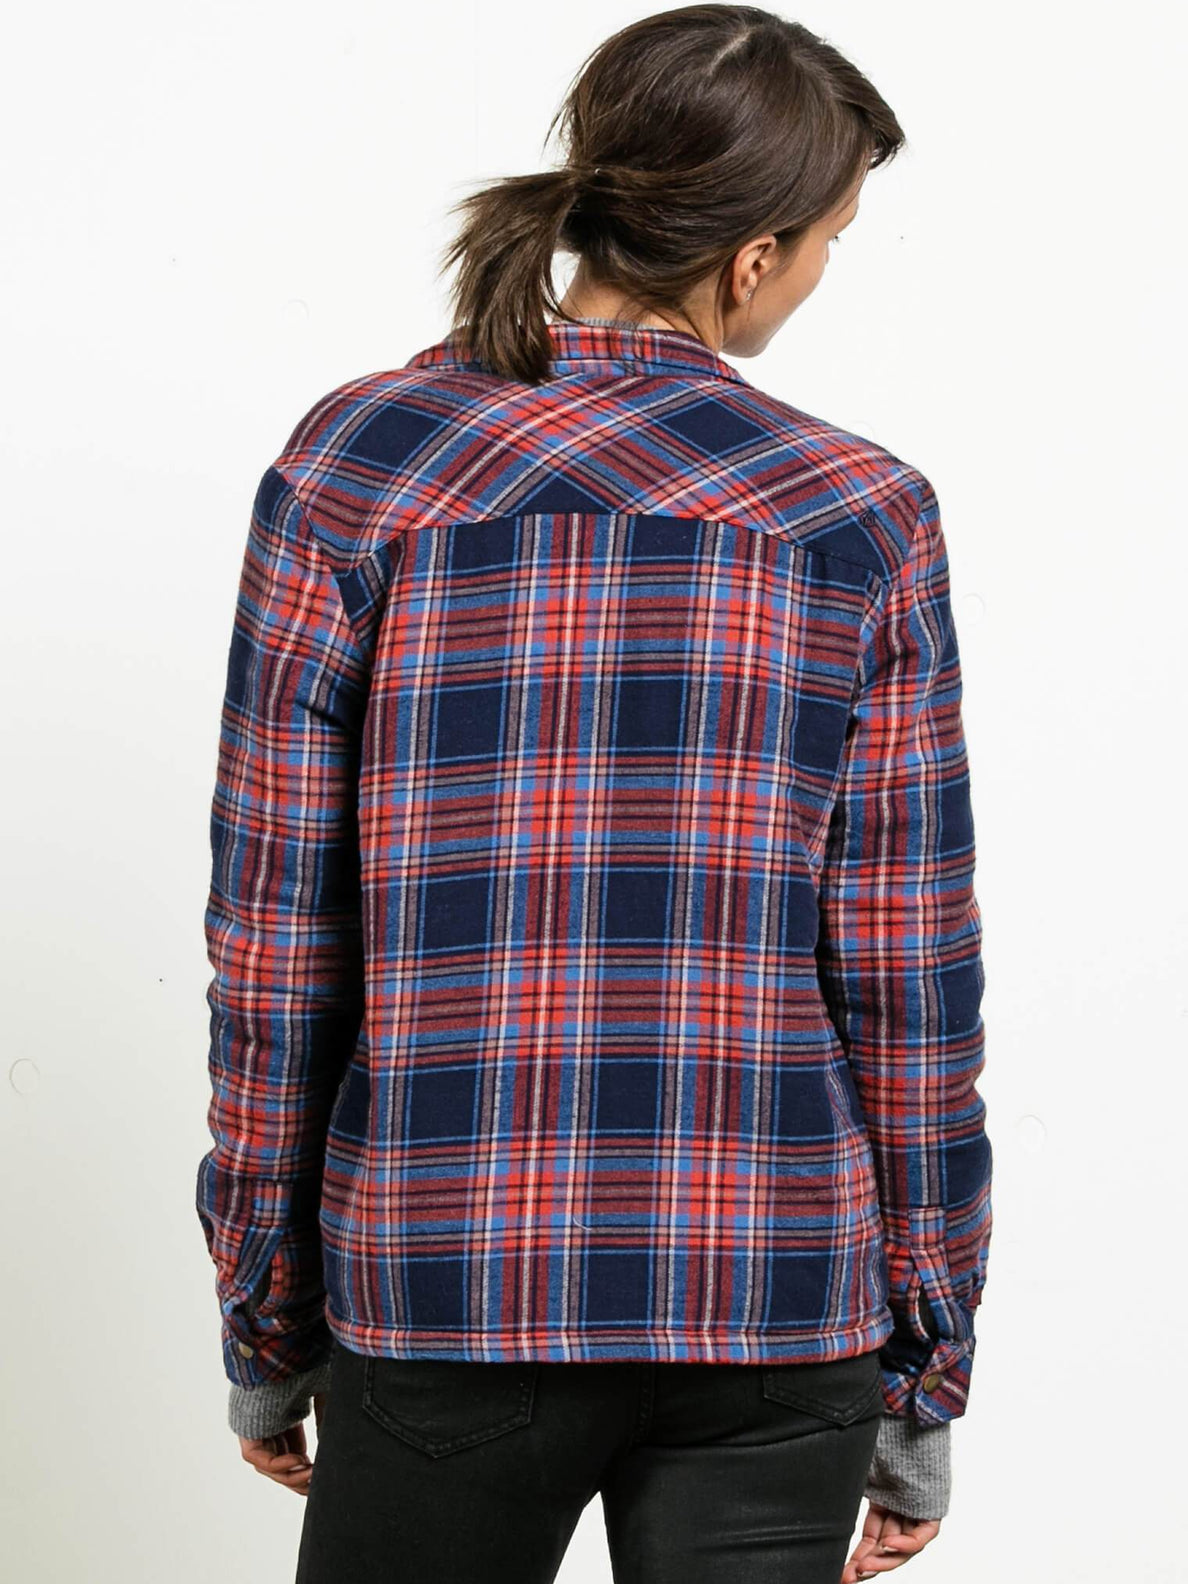 Plaid About You Long Sleeve Flannel - Midnight Blue